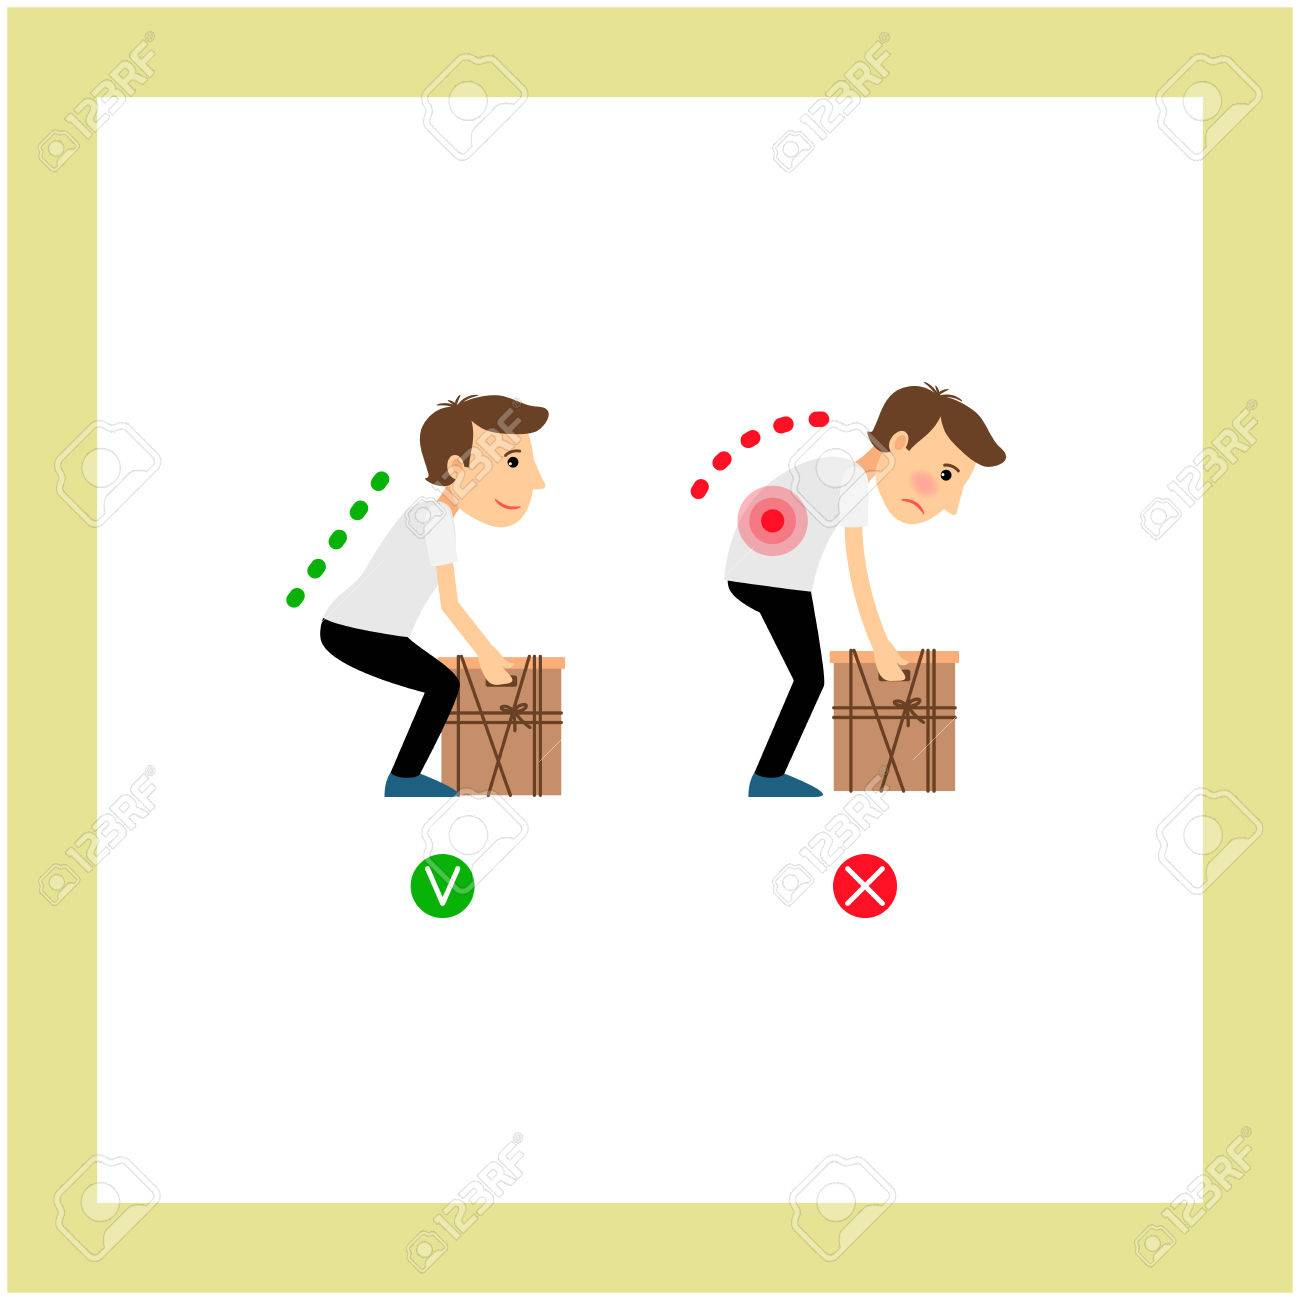 Correct and incorrect posture while weight lifting. Vector illustration - 72411472